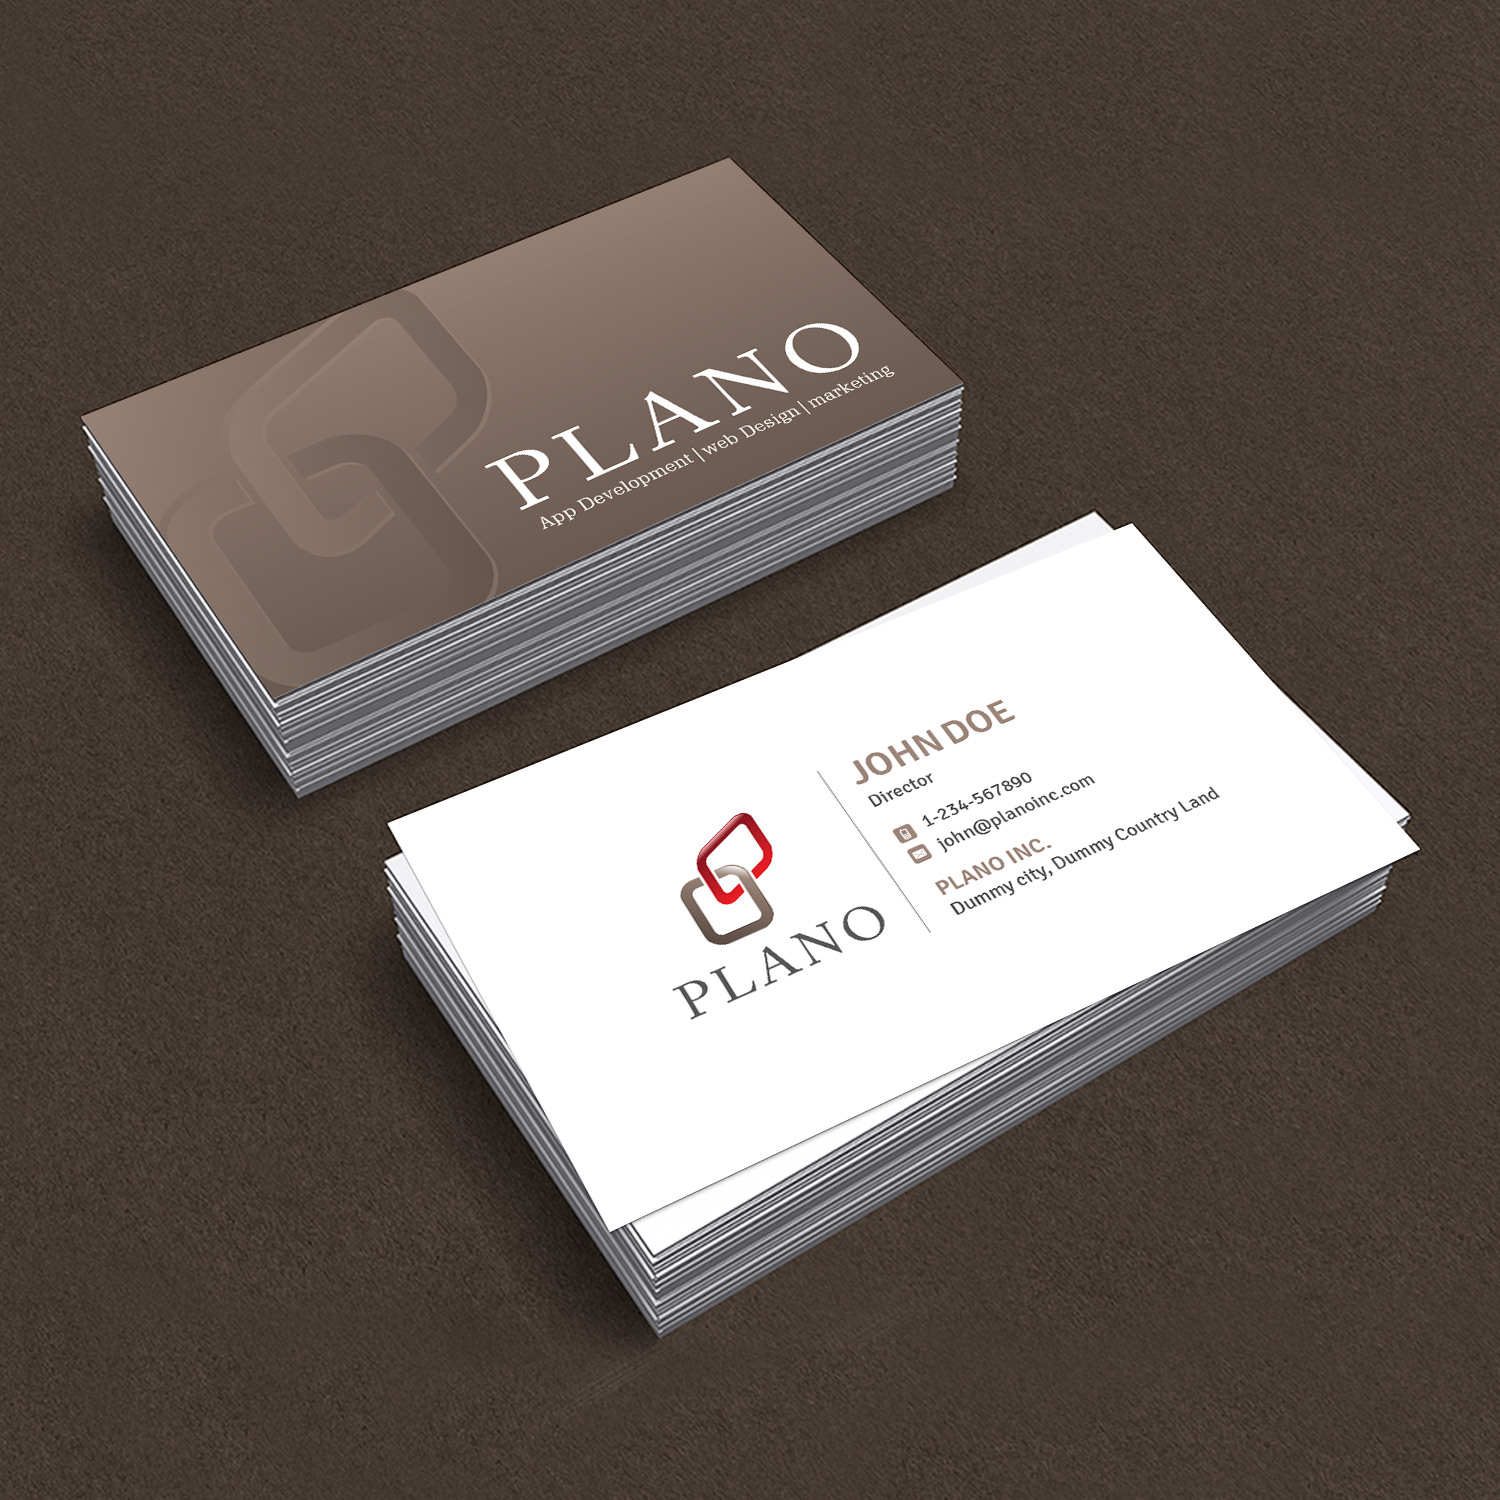 Bold Modern Design Agency Business Card Design For A